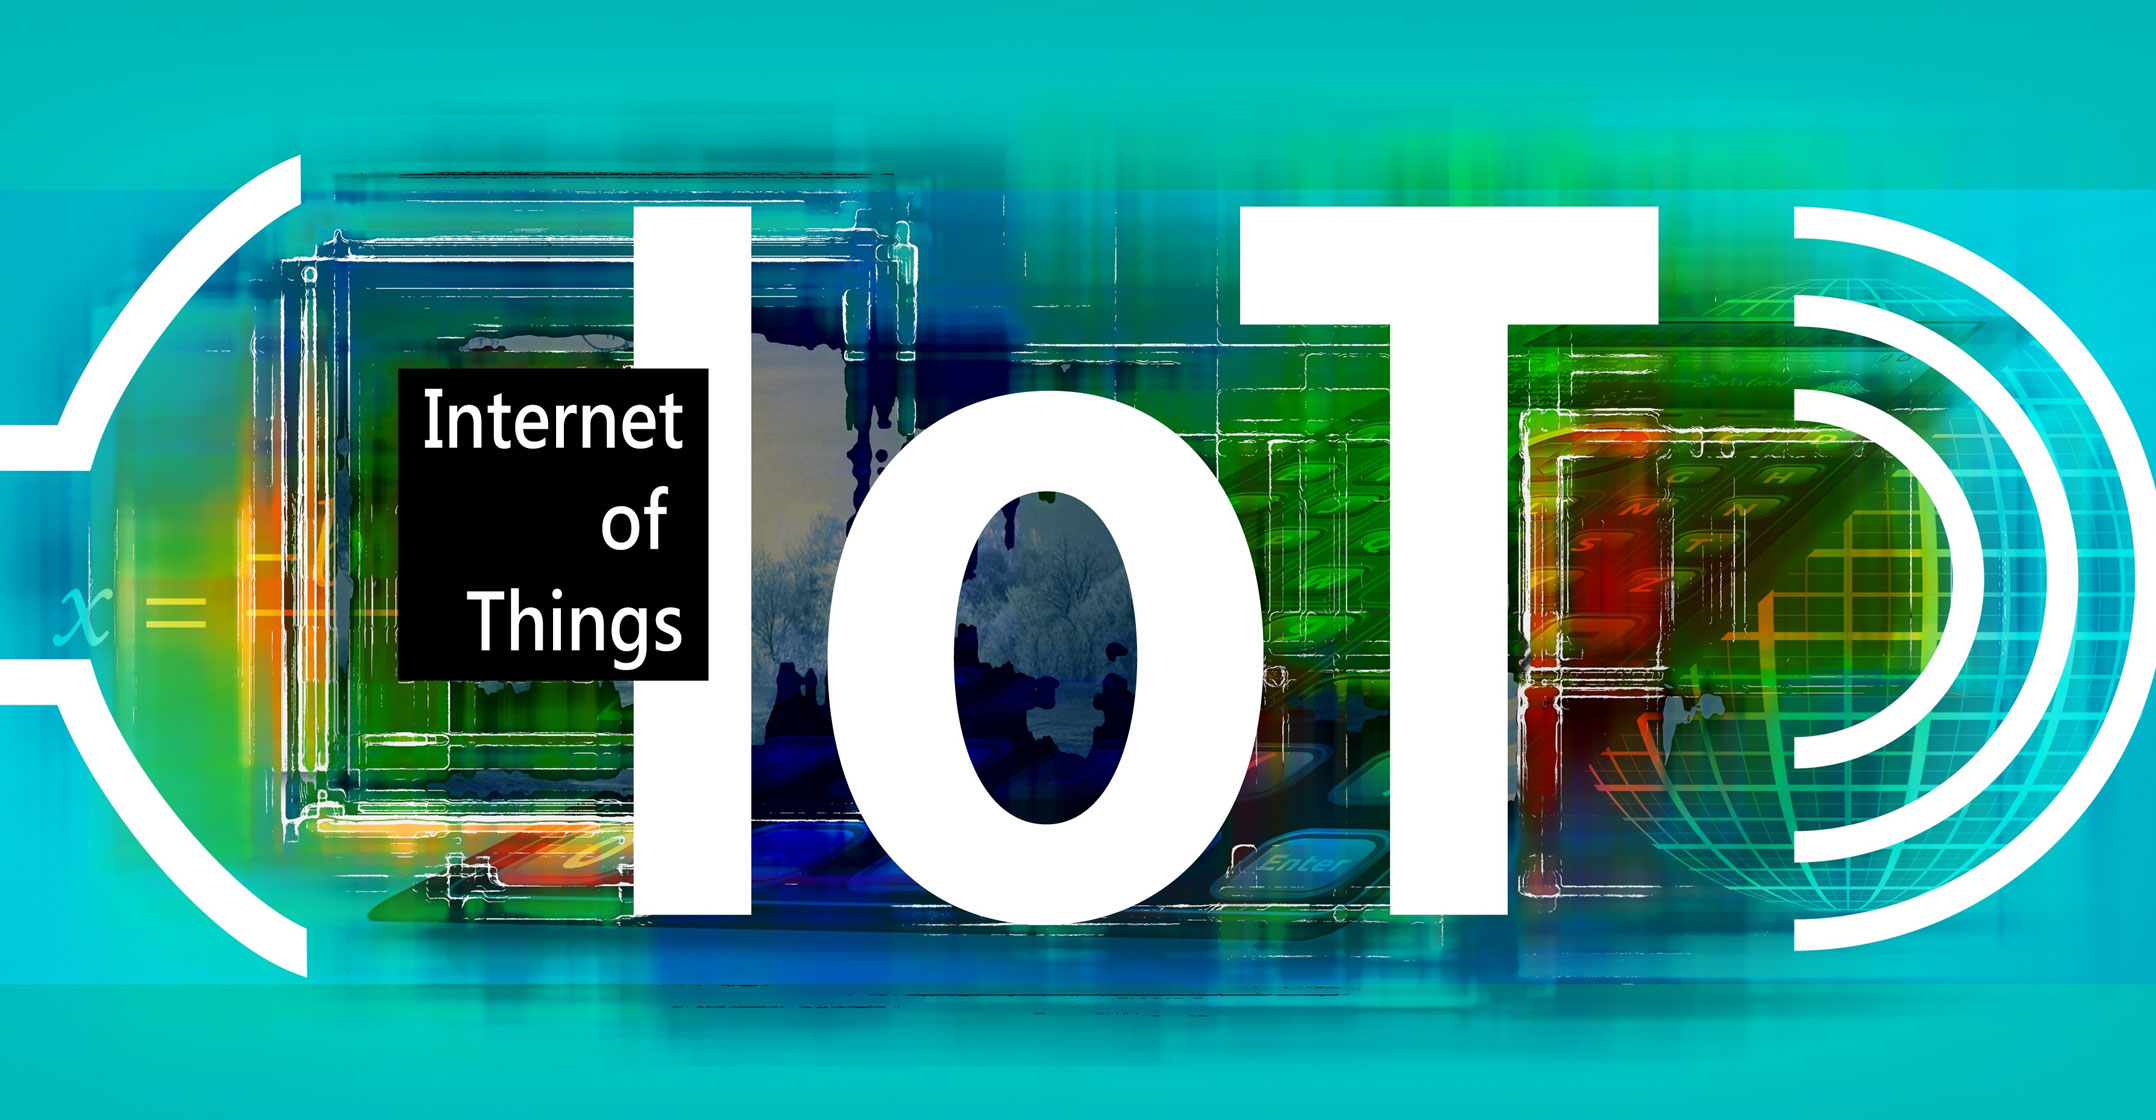 South African university students are being challenged to develop Internet of things solutions to address specific challenges facing the African continent. SqwidNet, which is building an IoT network in South Africa